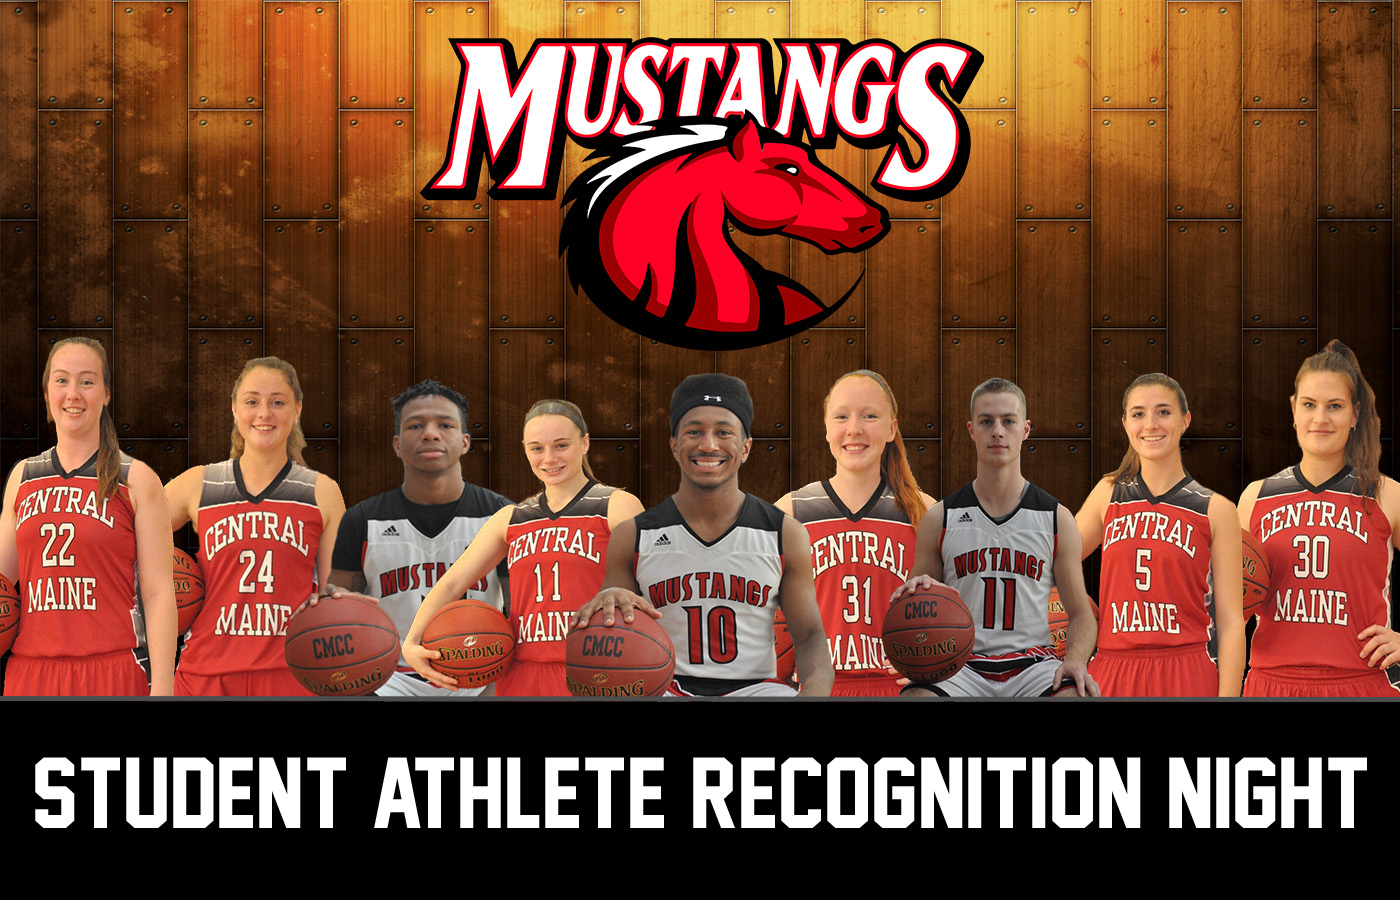 Student-Athlete Recognition Night Scheduled for this evening